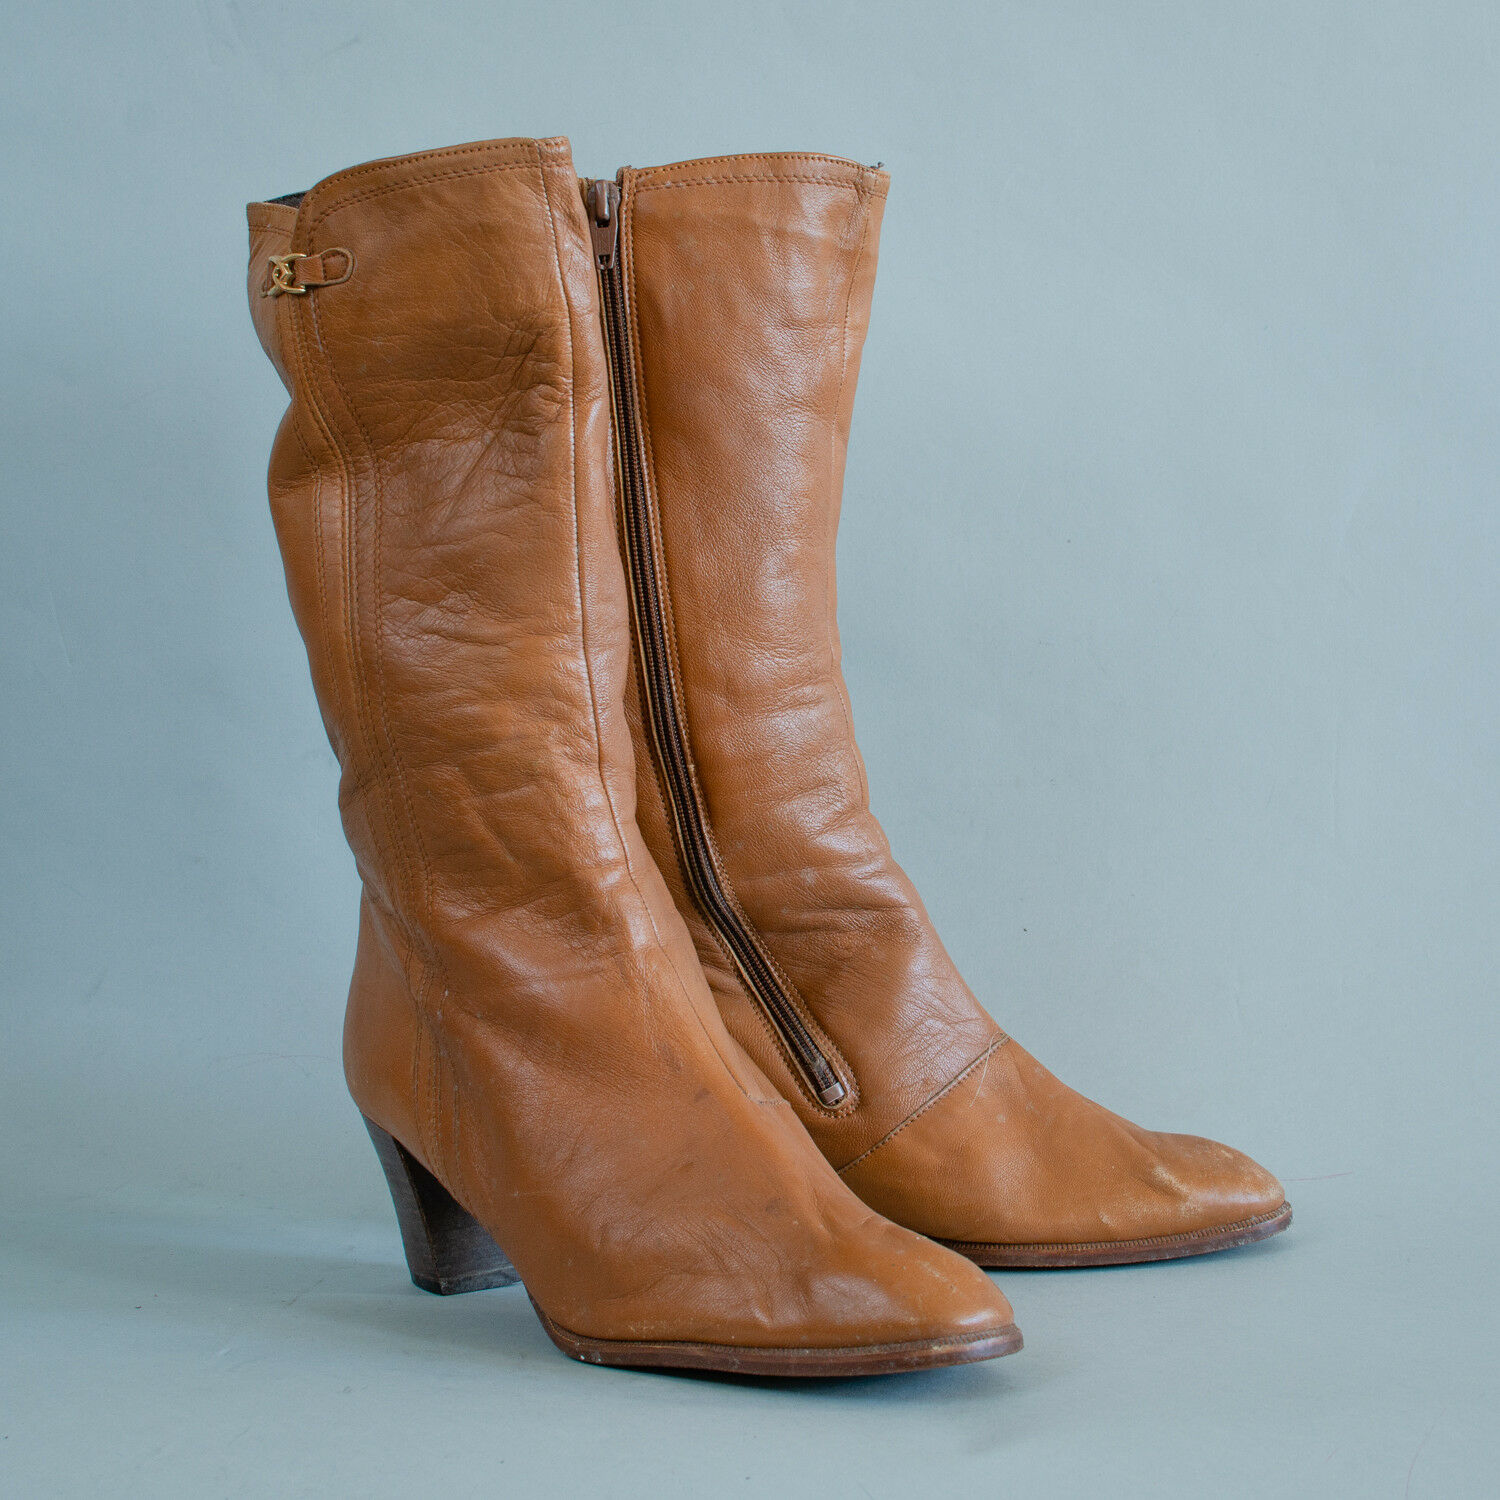 Vintage 80's 90's Women's Tan Leather Long Heeled Calf Boots US 9